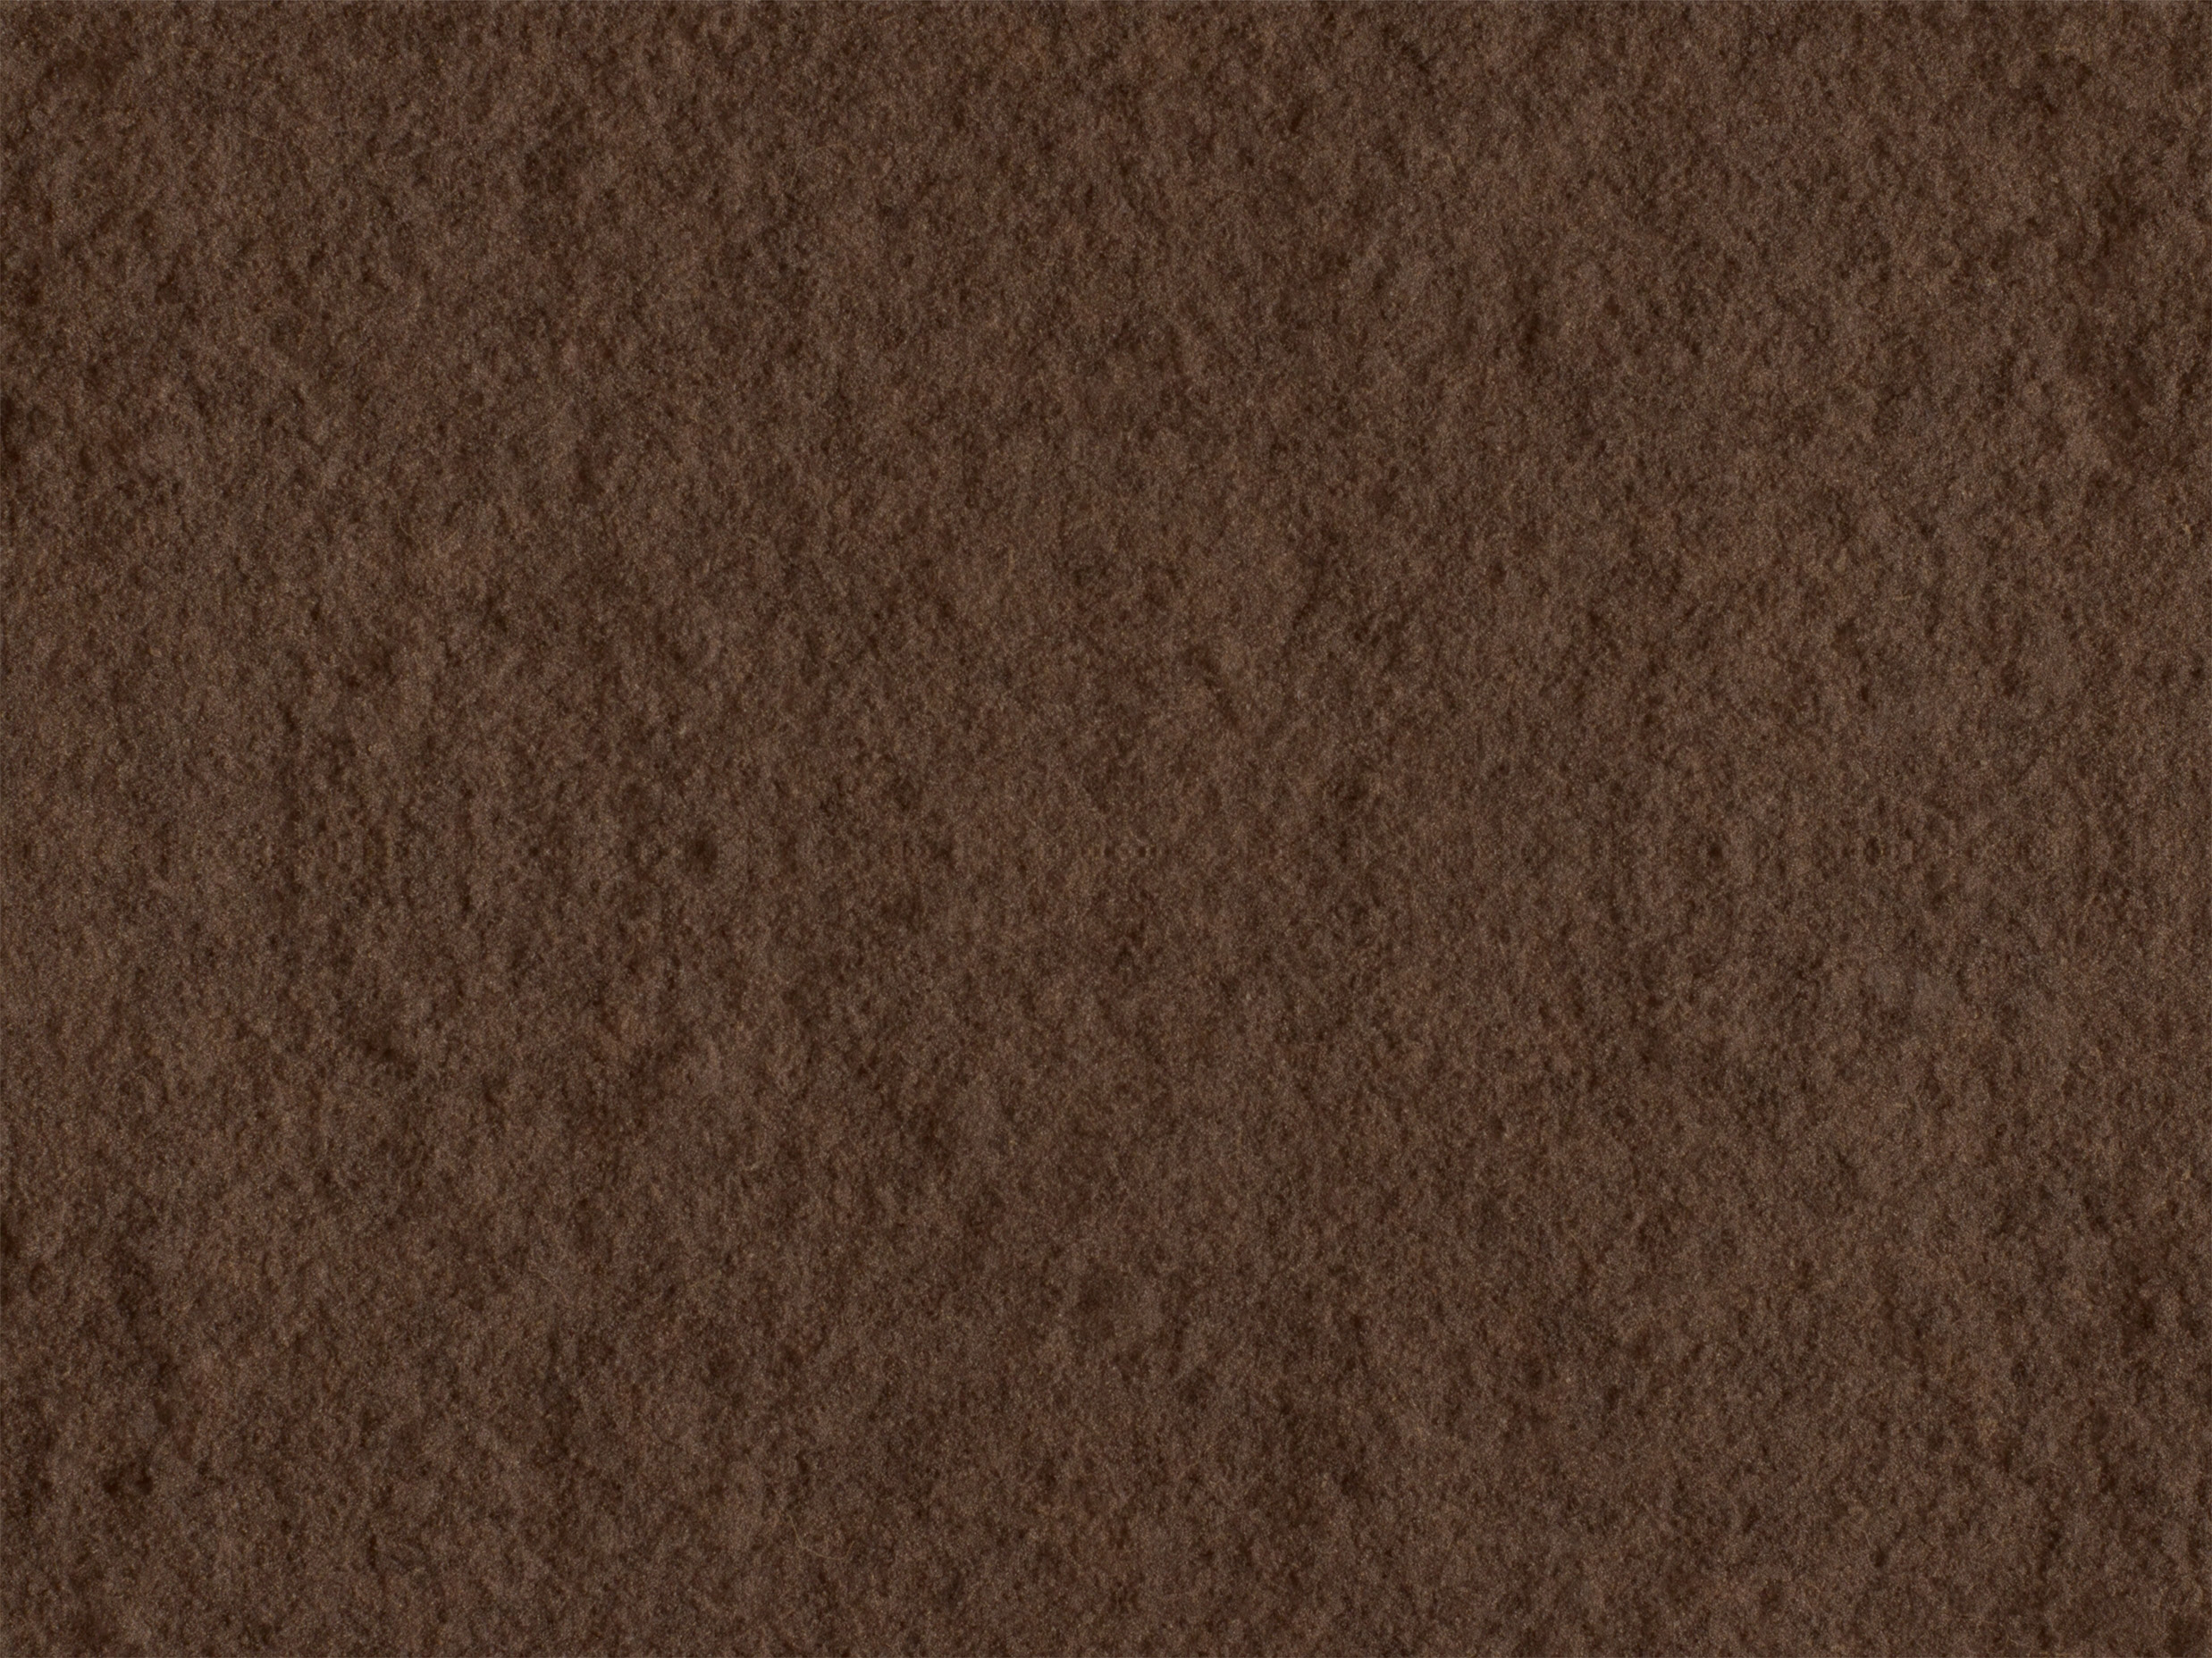 Top soil texture background, Plow, Mineral, Modified, Nature, HQ Photo